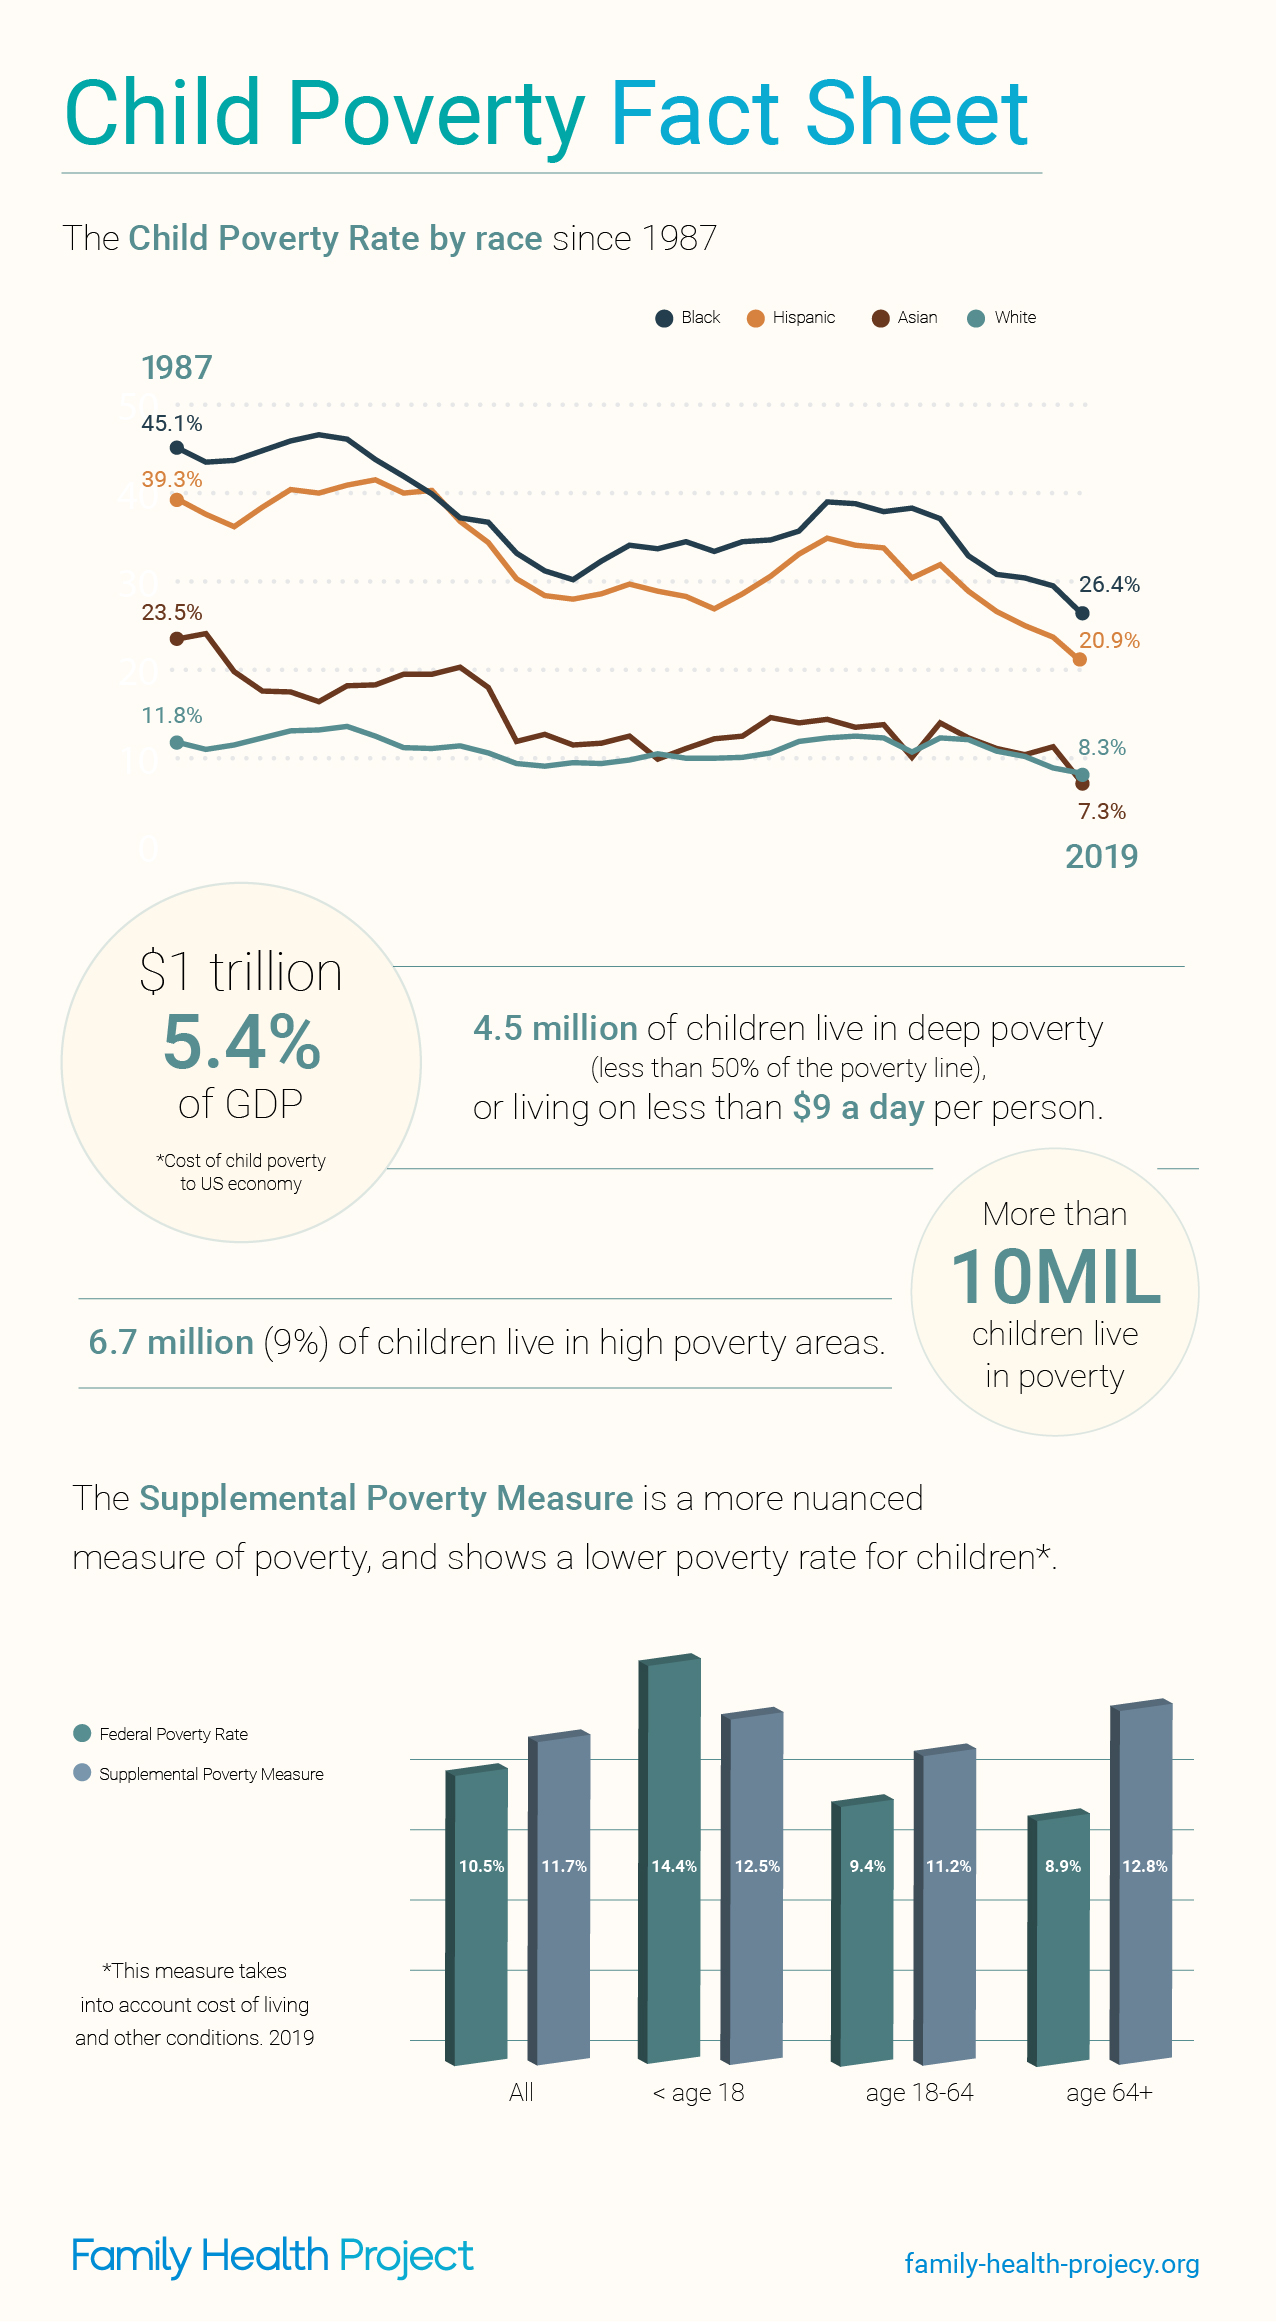 Child Poverty Fact Sheet